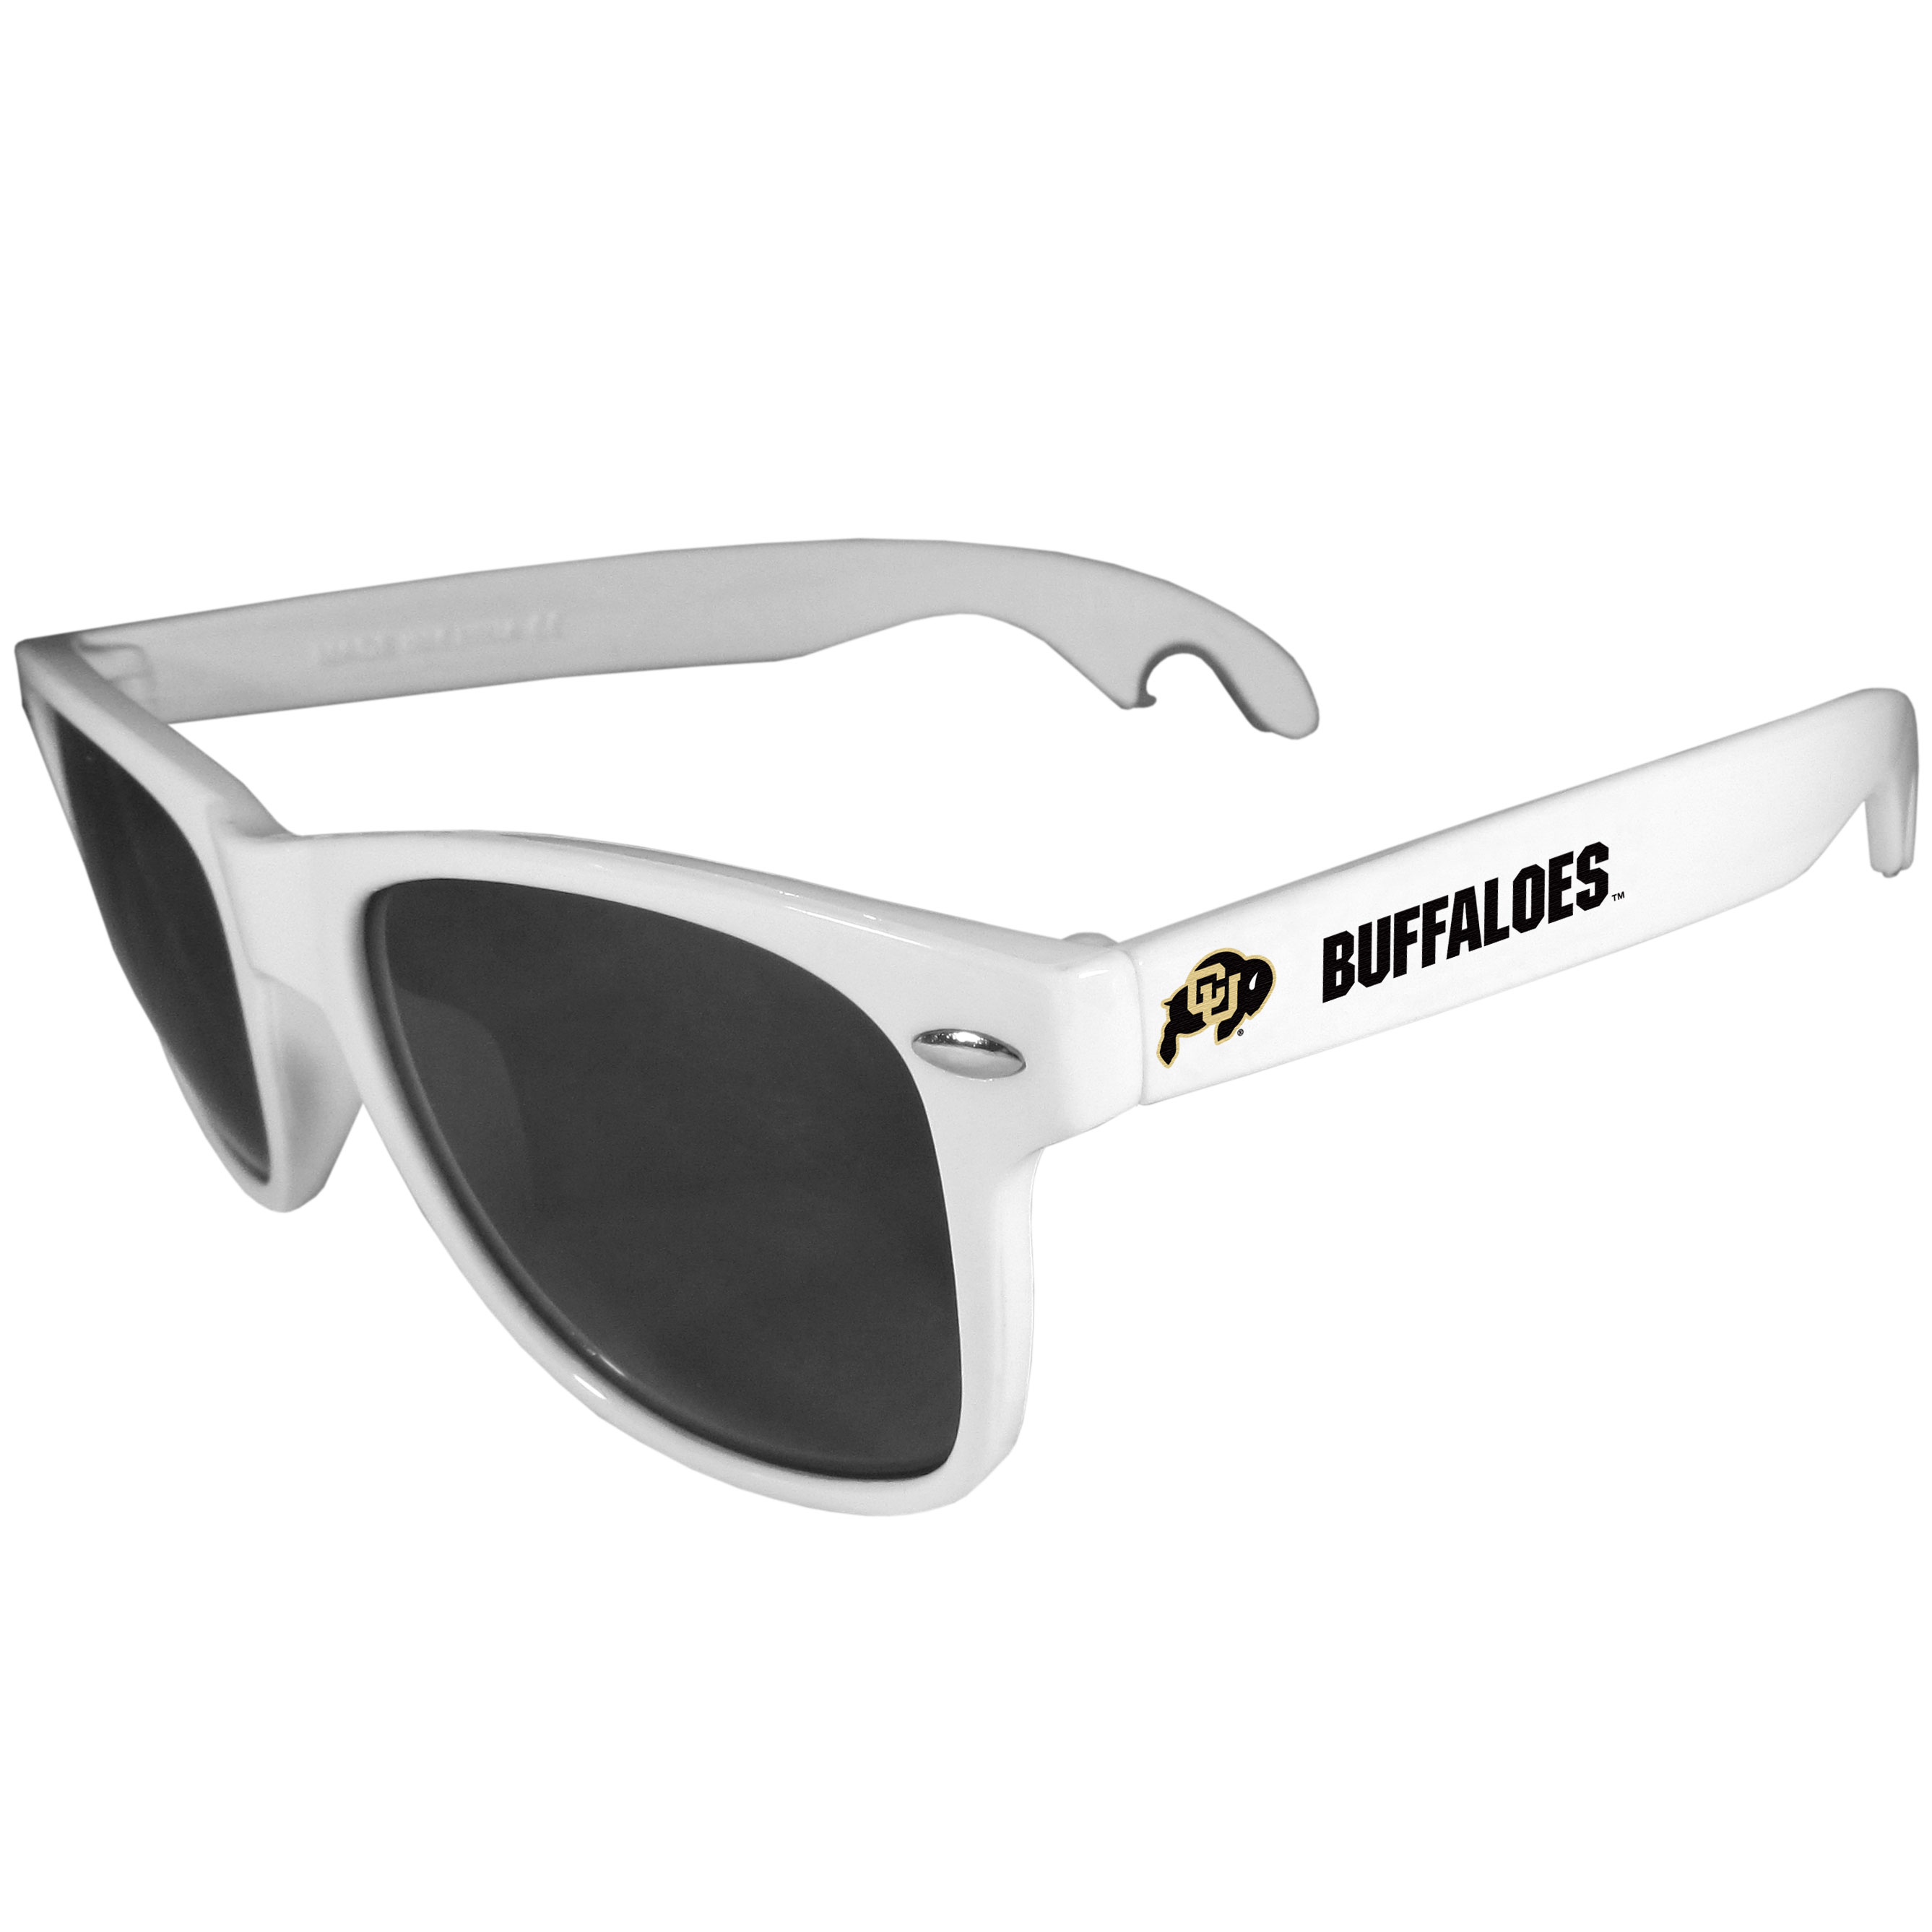 Colorado Buffaloes Beachfarer Bottle Opener Sunglasses, White - Seriously, these sunglasses open bottles! Keep the party going with these amazing Colorado Buffaloes bottle opener sunglasses. The stylish retro frames feature team designs on the arms and functional bottle openers on the end of the arms. Whether you are at the beach or having a backyard BBQ on game day, these shades will keep your eyes protected with 100% UVA/UVB protection and keep you hydrated with the handy bottle opener arms.